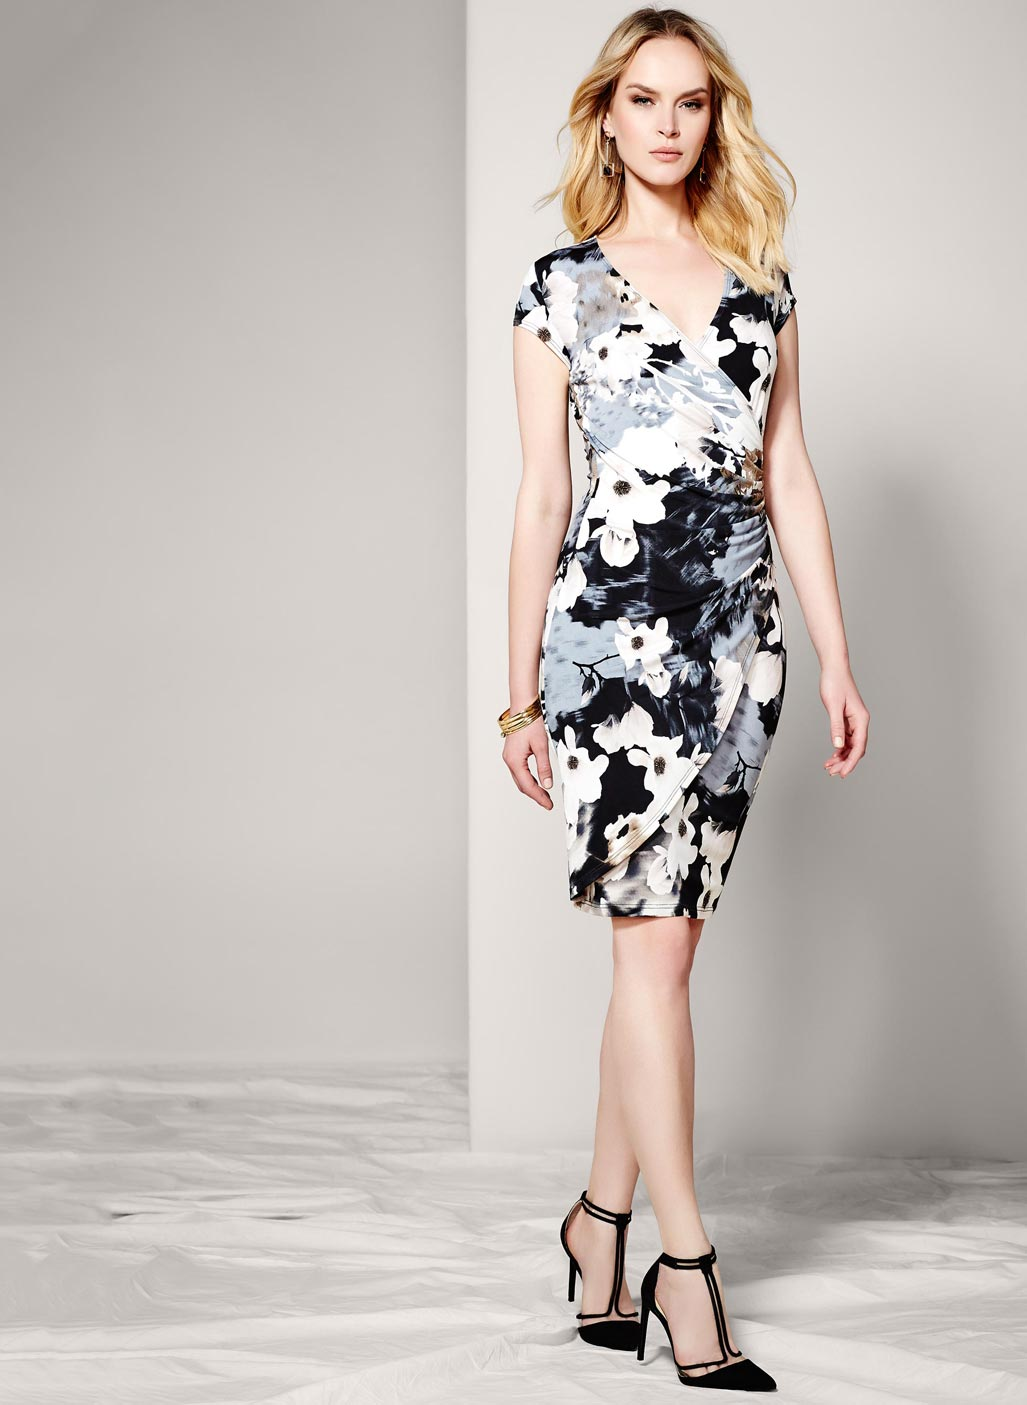 Shop Melanie Lyne Dress Shop